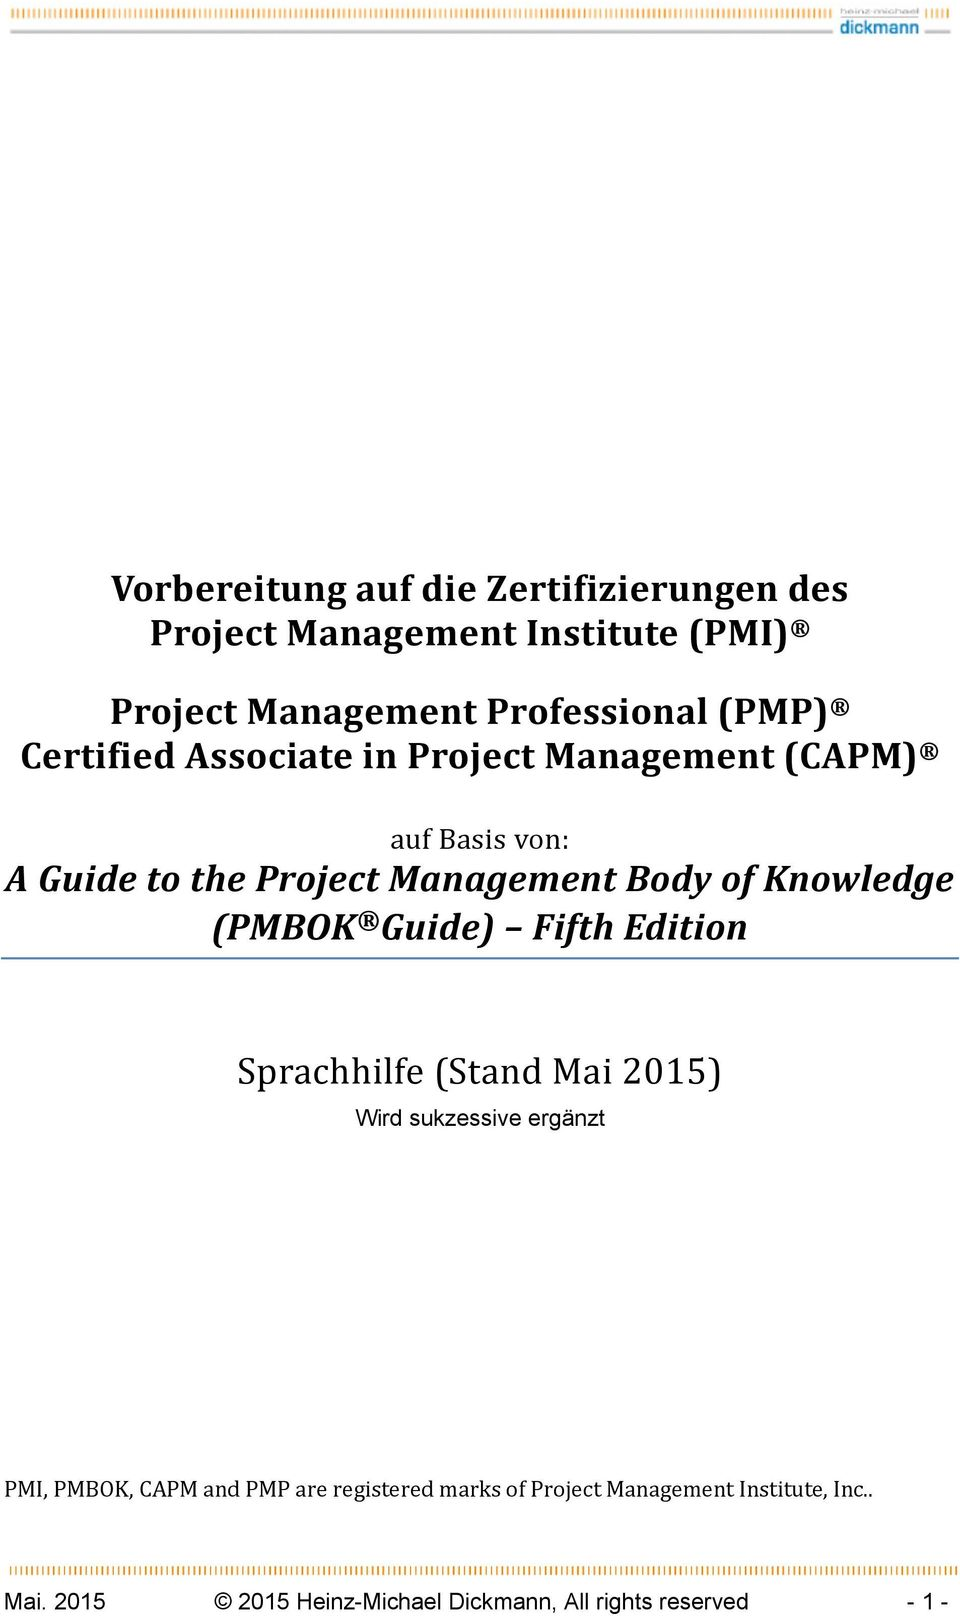 project management body of knowledge pmbok 4th edition pdf download